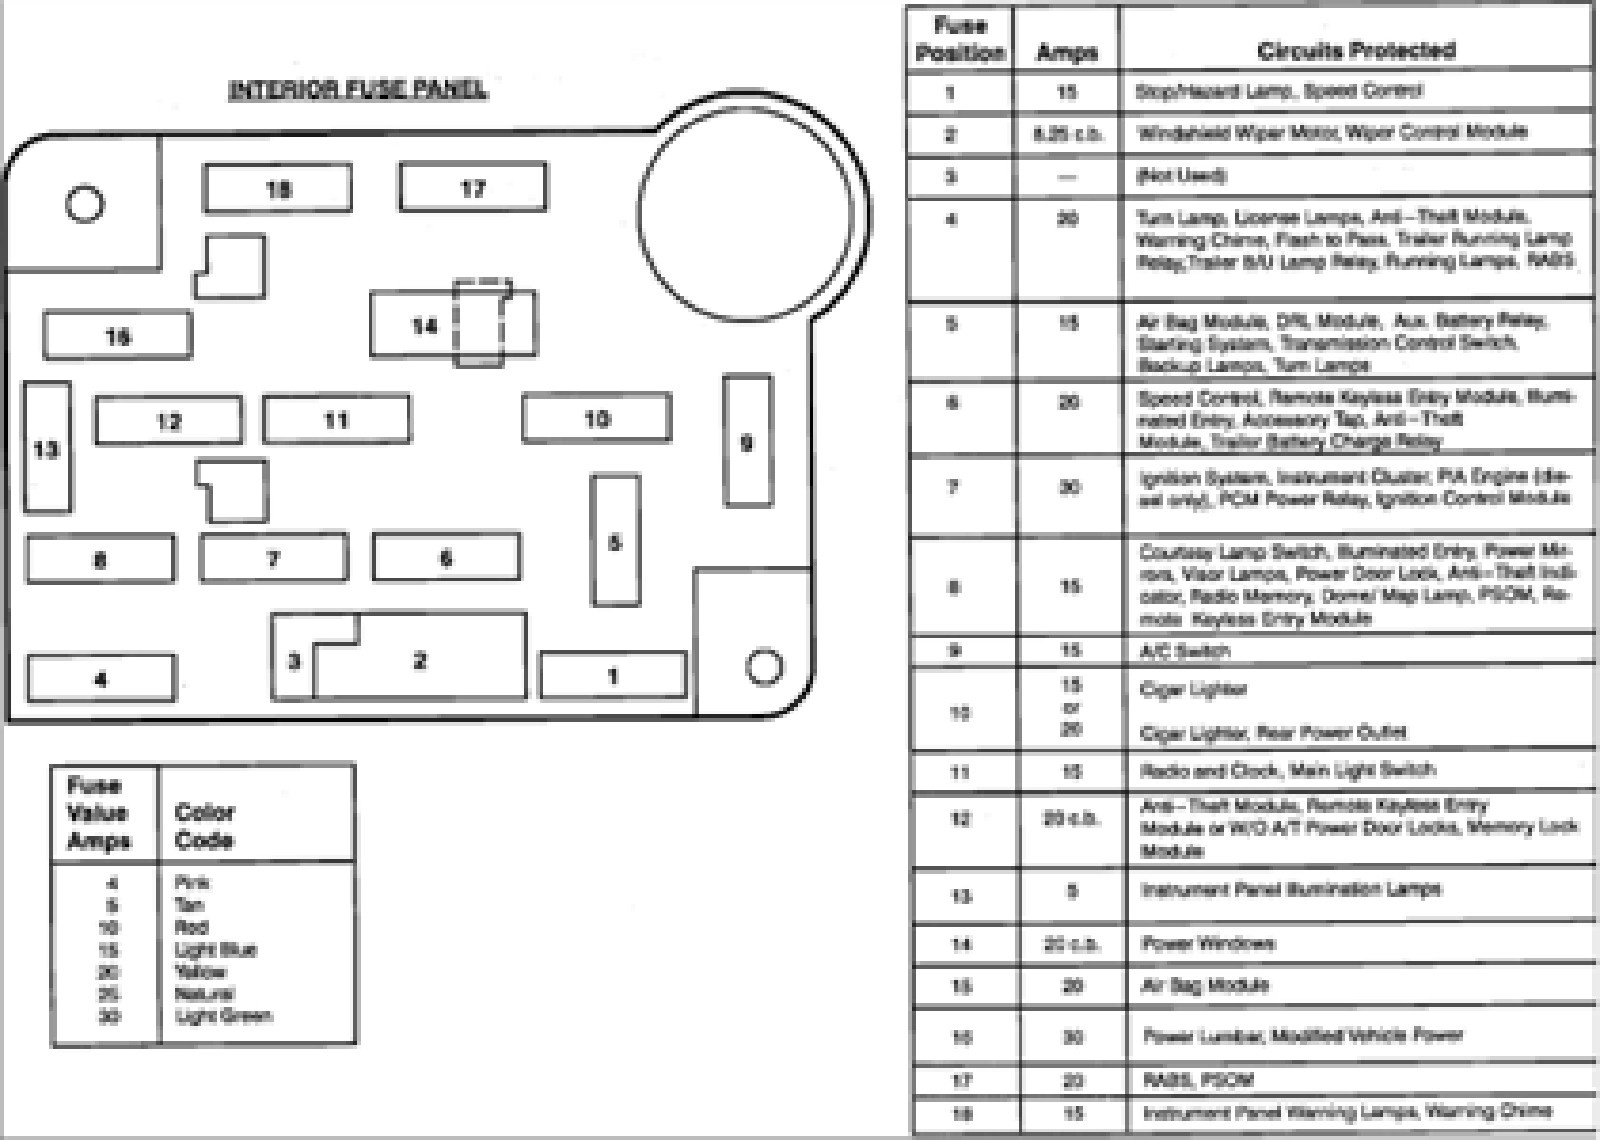 pic 8862473225641007897 1600x1200 1989 ford ranger fuse box diagram 1994 ford ranger fuse box layout 1996 Ford Explorer Fuse Box Diagram at webbmarketing.co